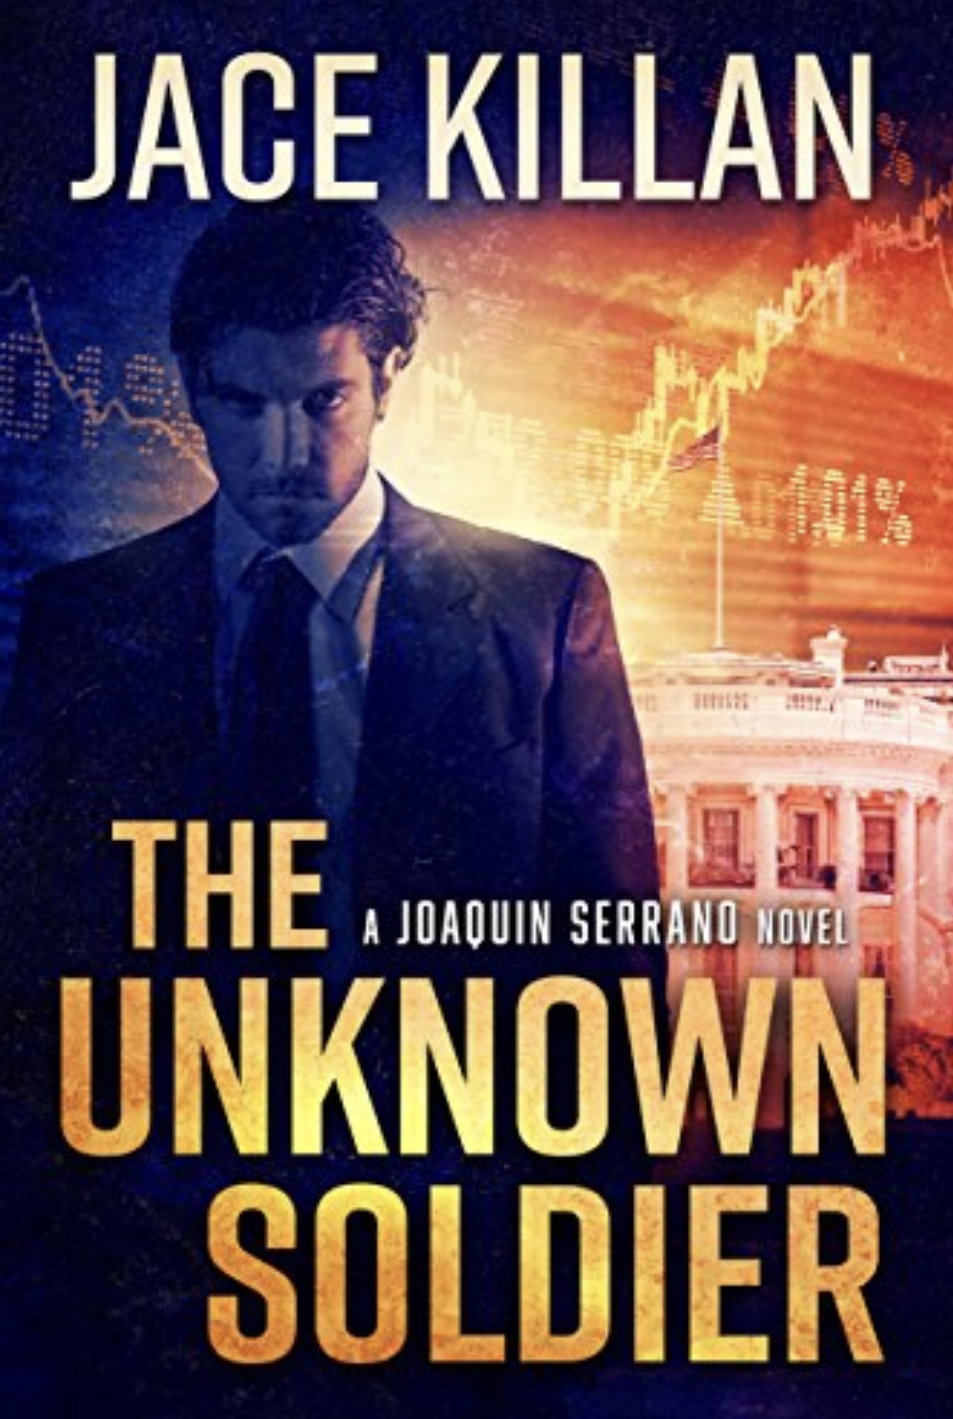 The Unknown Soldier by Jace Killan